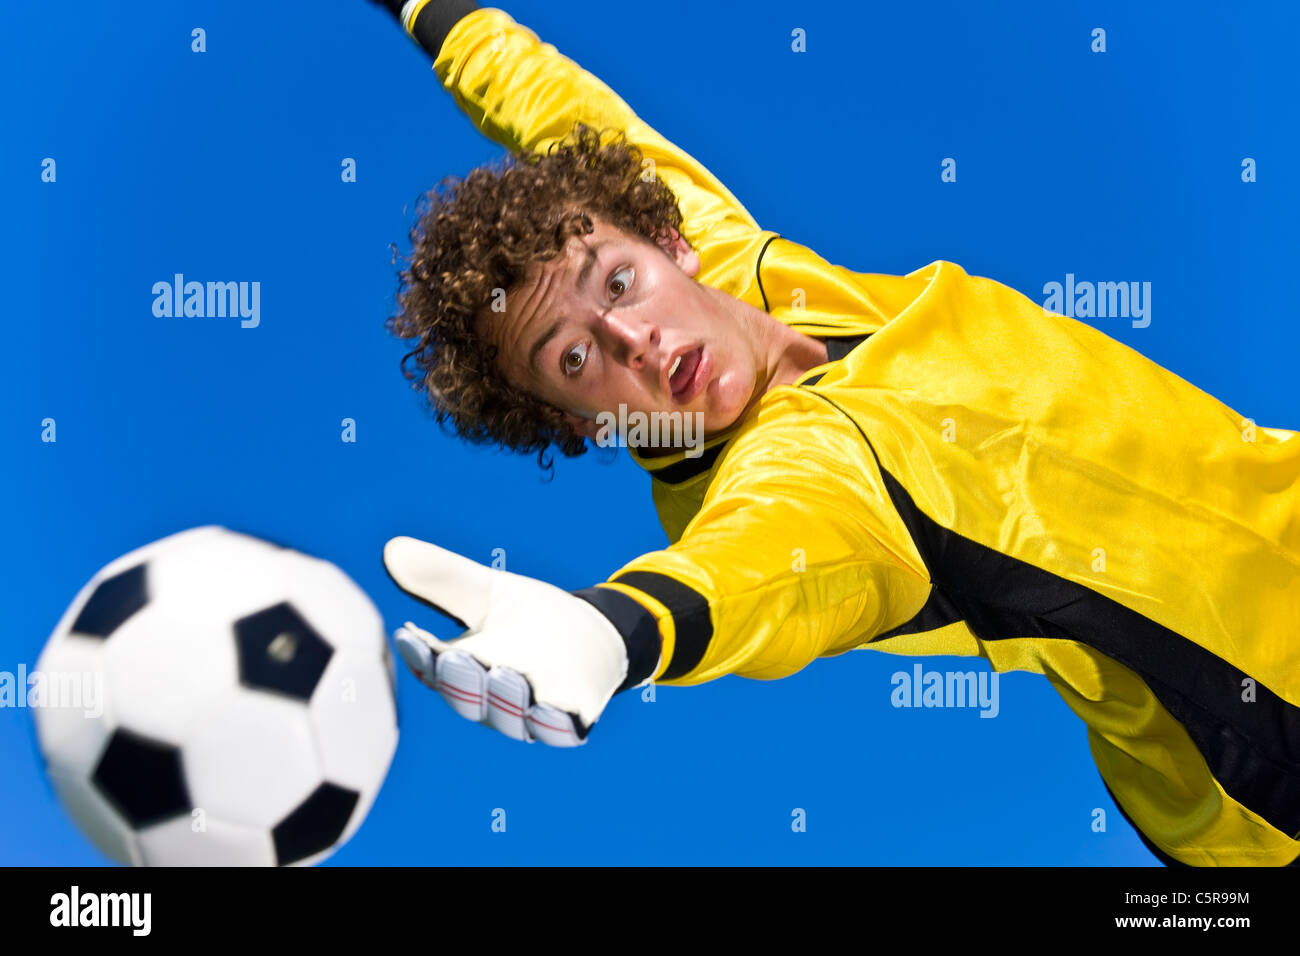 A soccer goalie tries to make the save - Stock Image